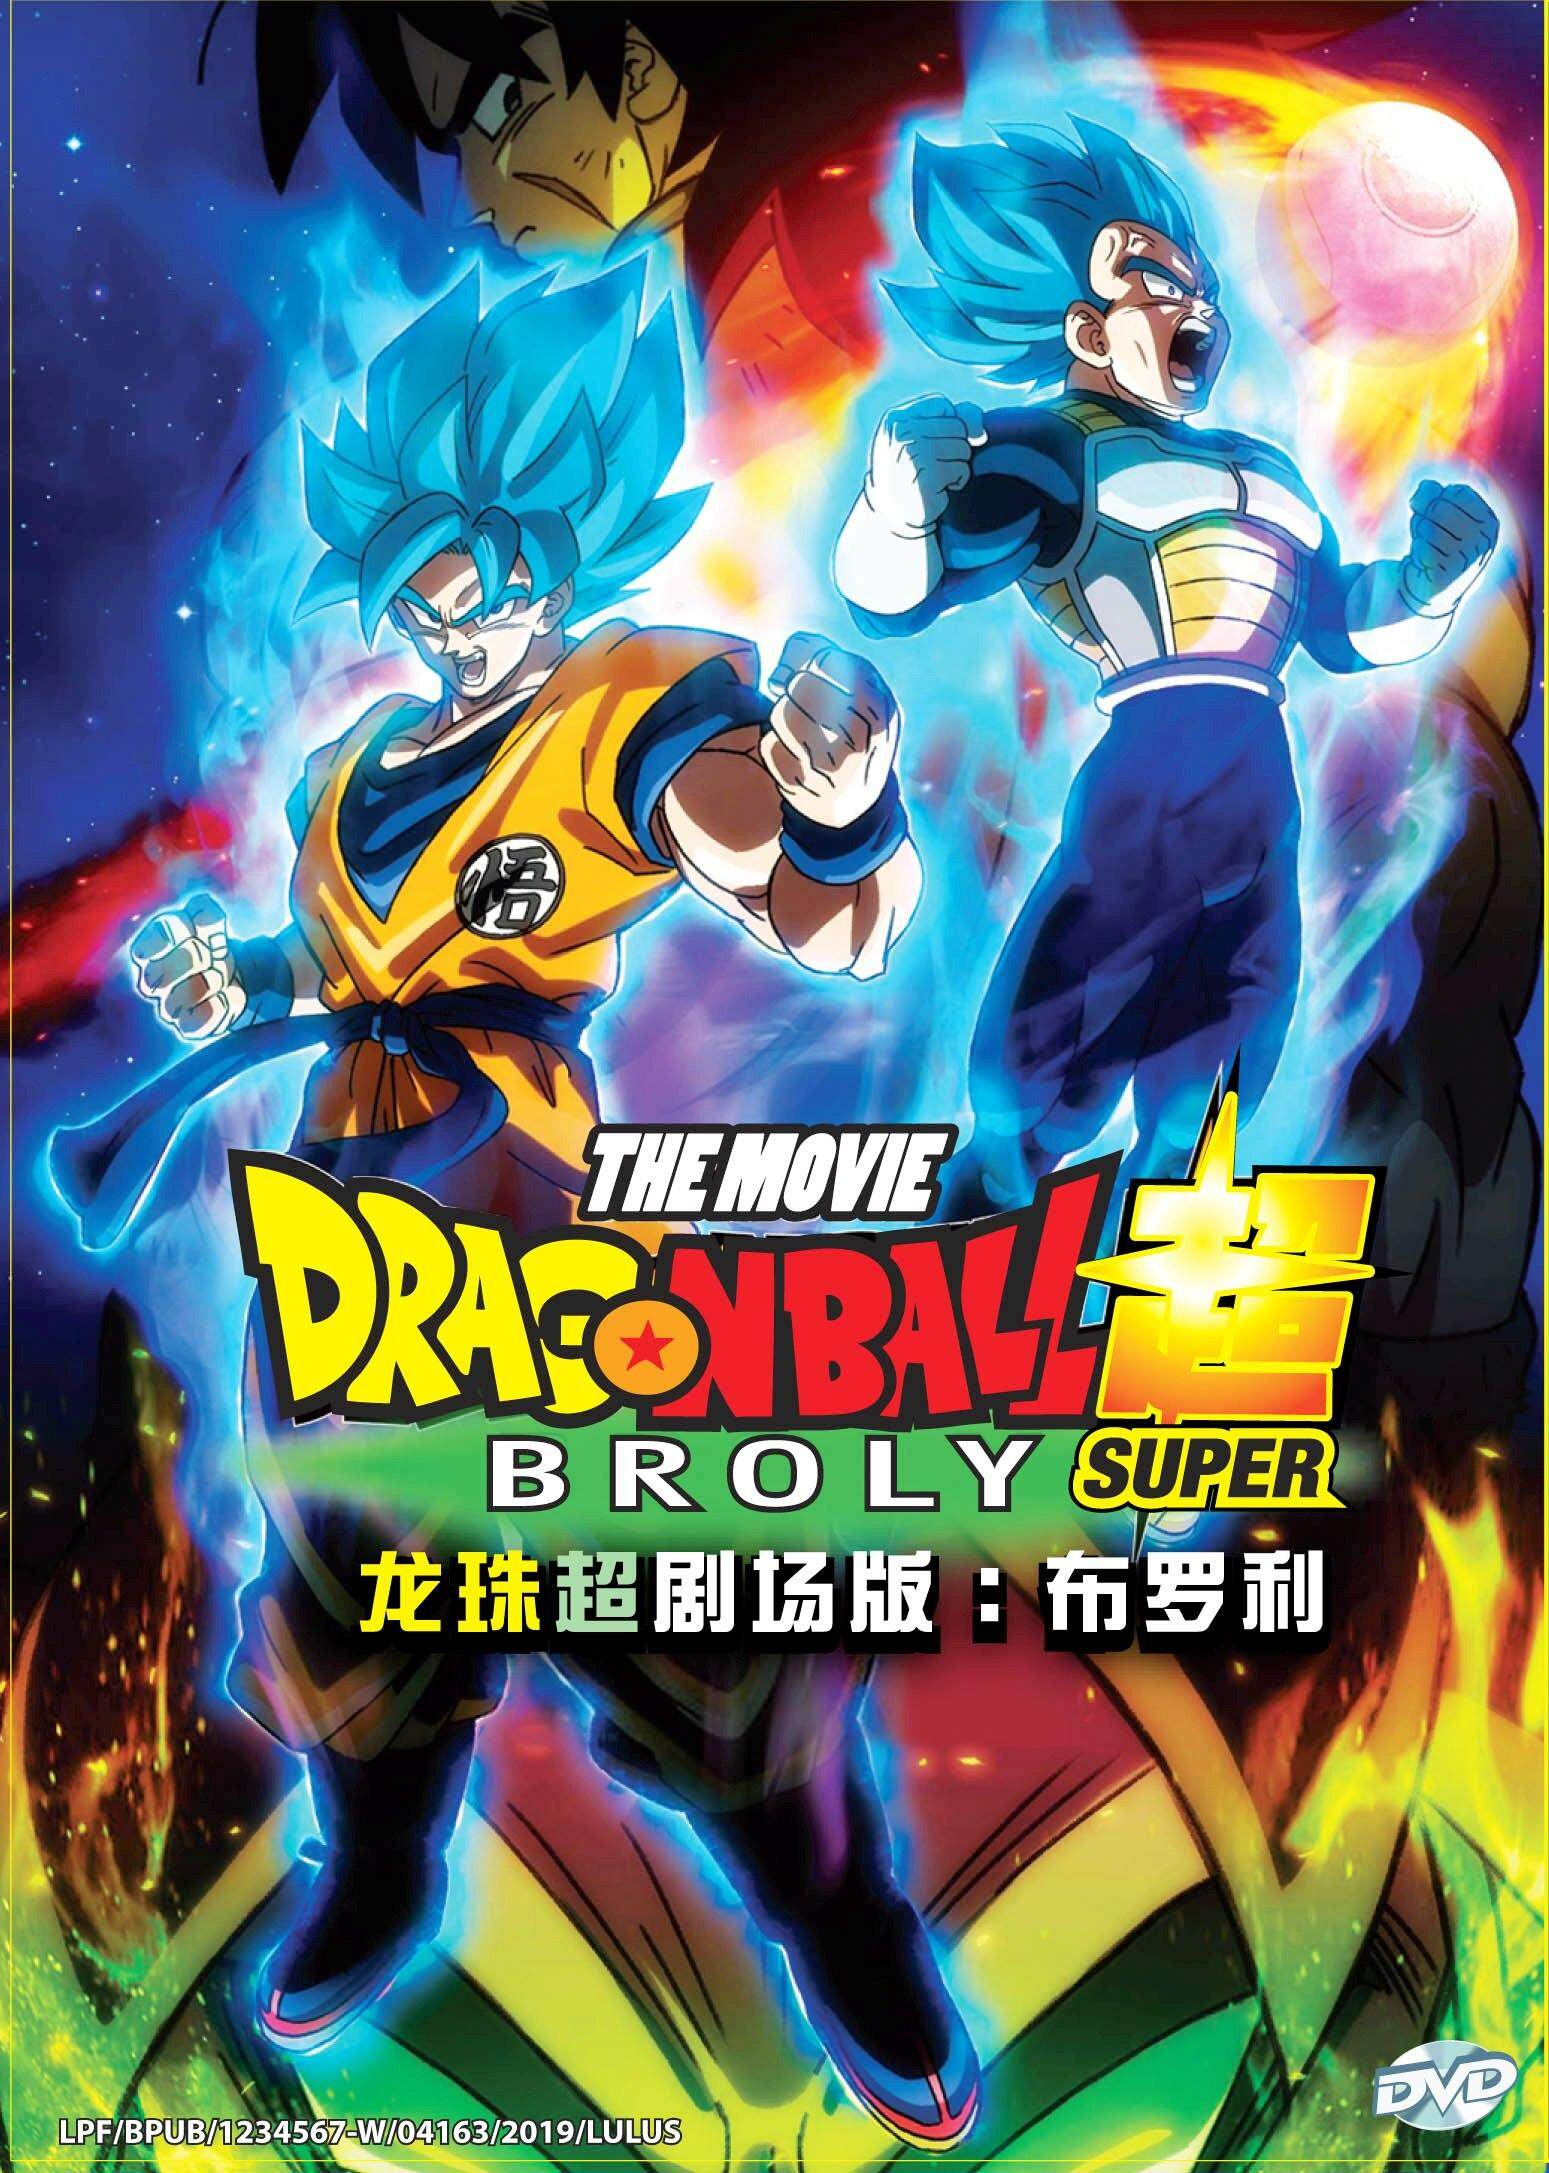 Anime Dvd Dragon Ball Super : Broly The Movie (2018) By Onekm Animation Shop.